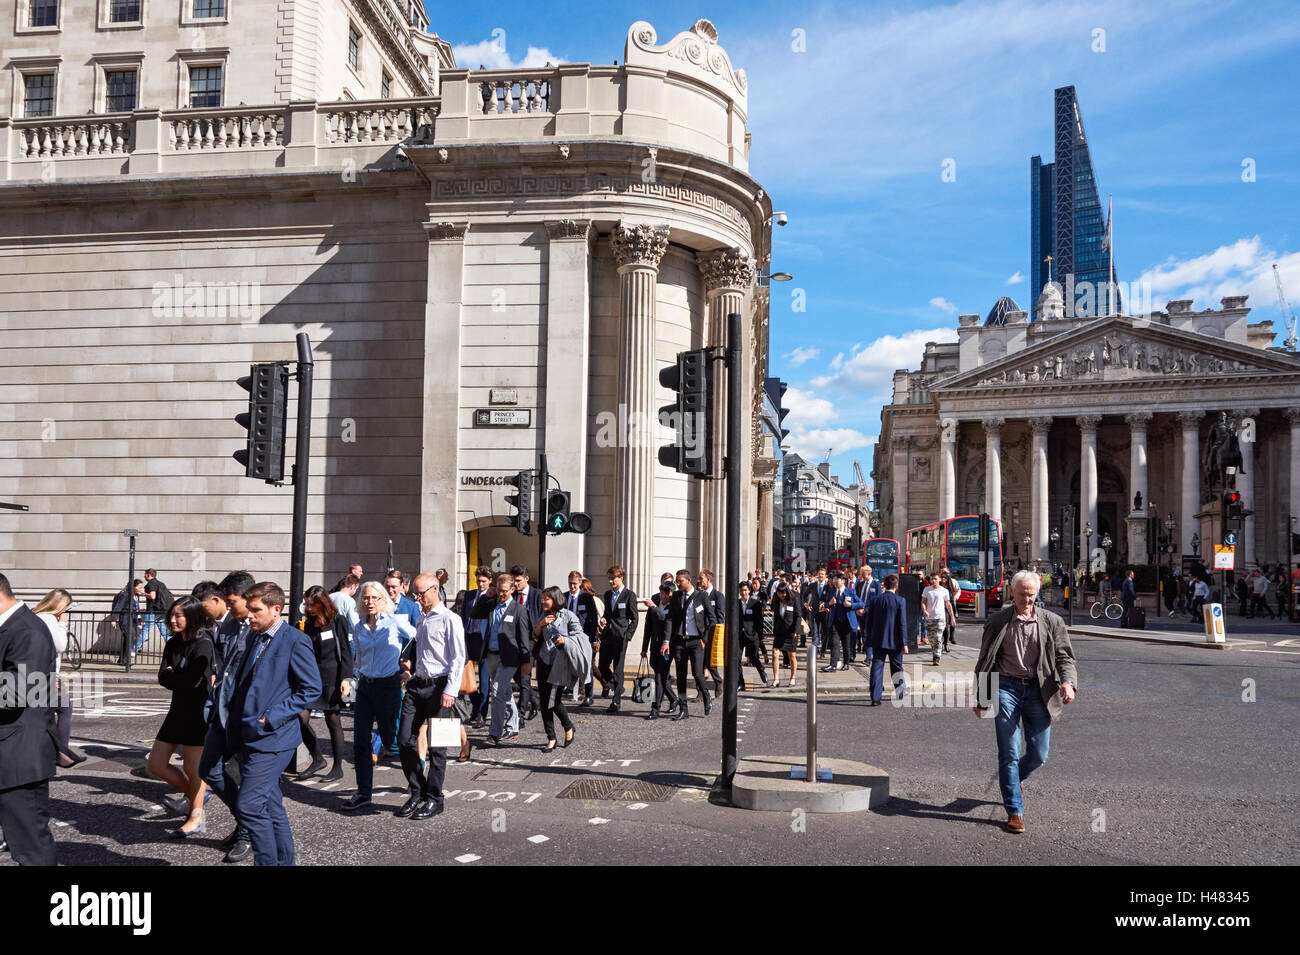 Bank junction with the Bank of England and the Royal Exchange in London, England United Kingdom UK - Stock Image